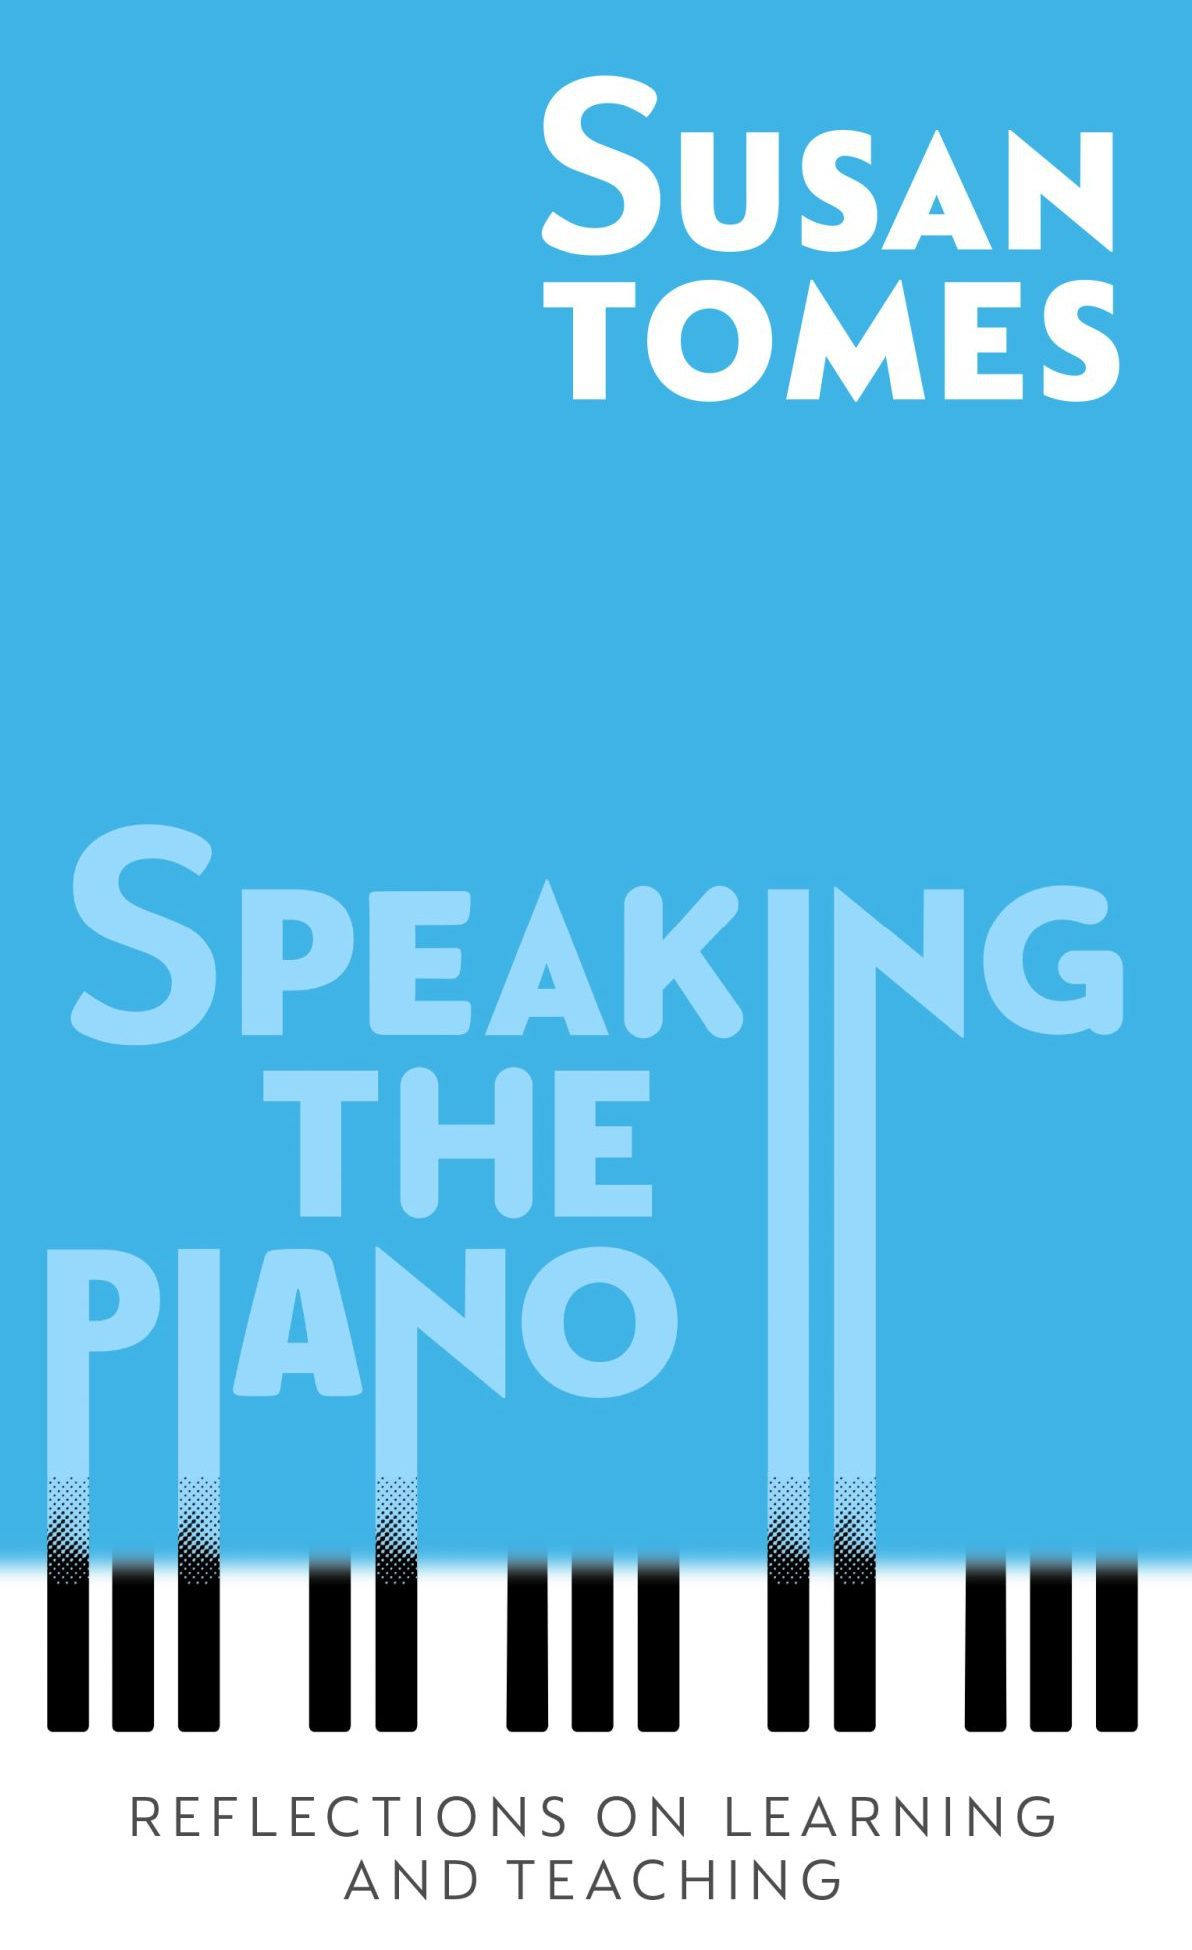 Speaking-the-Piano-front-cover-1-e1530256784320